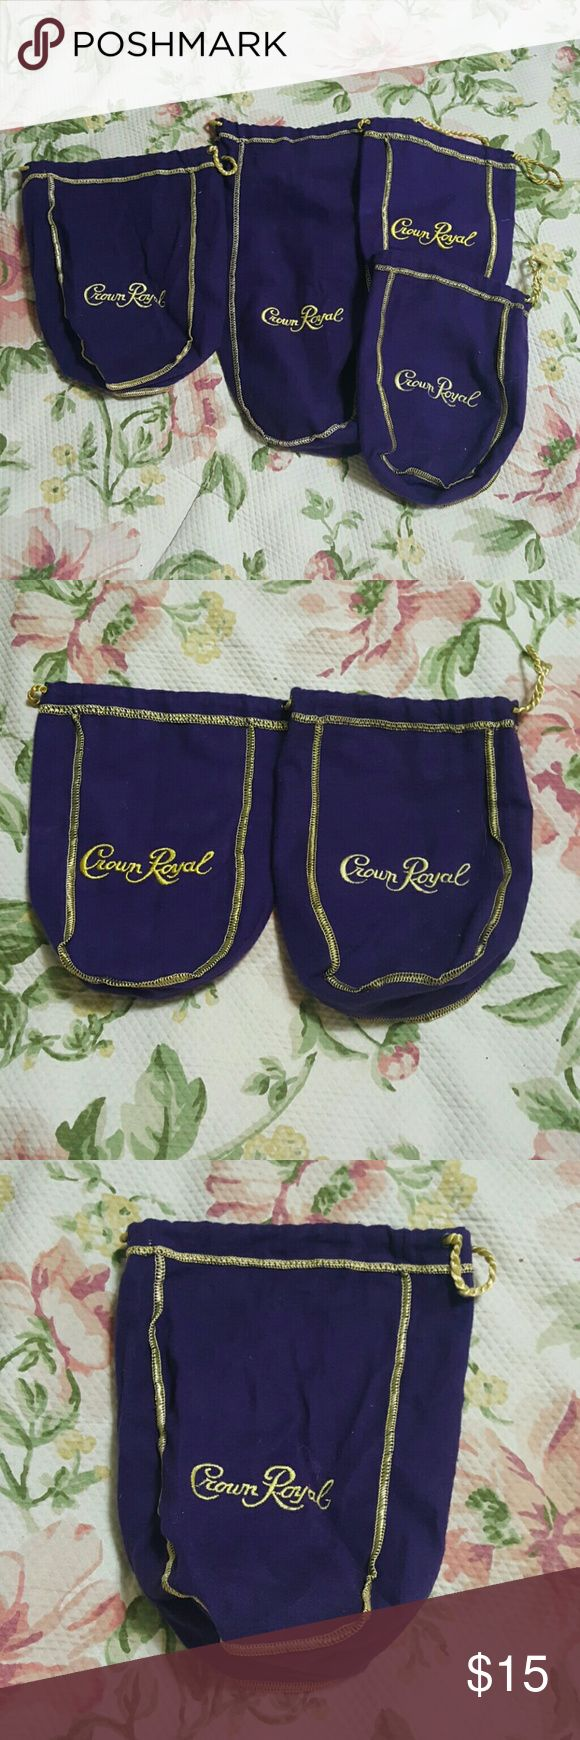 4 crown royal bags Set of 4 purple crown royal bags! 1 large, 1 medium, 2 small. Approx measurements are taken from drawstring and gold seams in inches. Buy these 4 get a 5th crown royal bag free!  Large 12x5x4 Medium 9x5x2.5 Small 7.5x4x2.5 Small 7x4.5x3 Bags Satchels